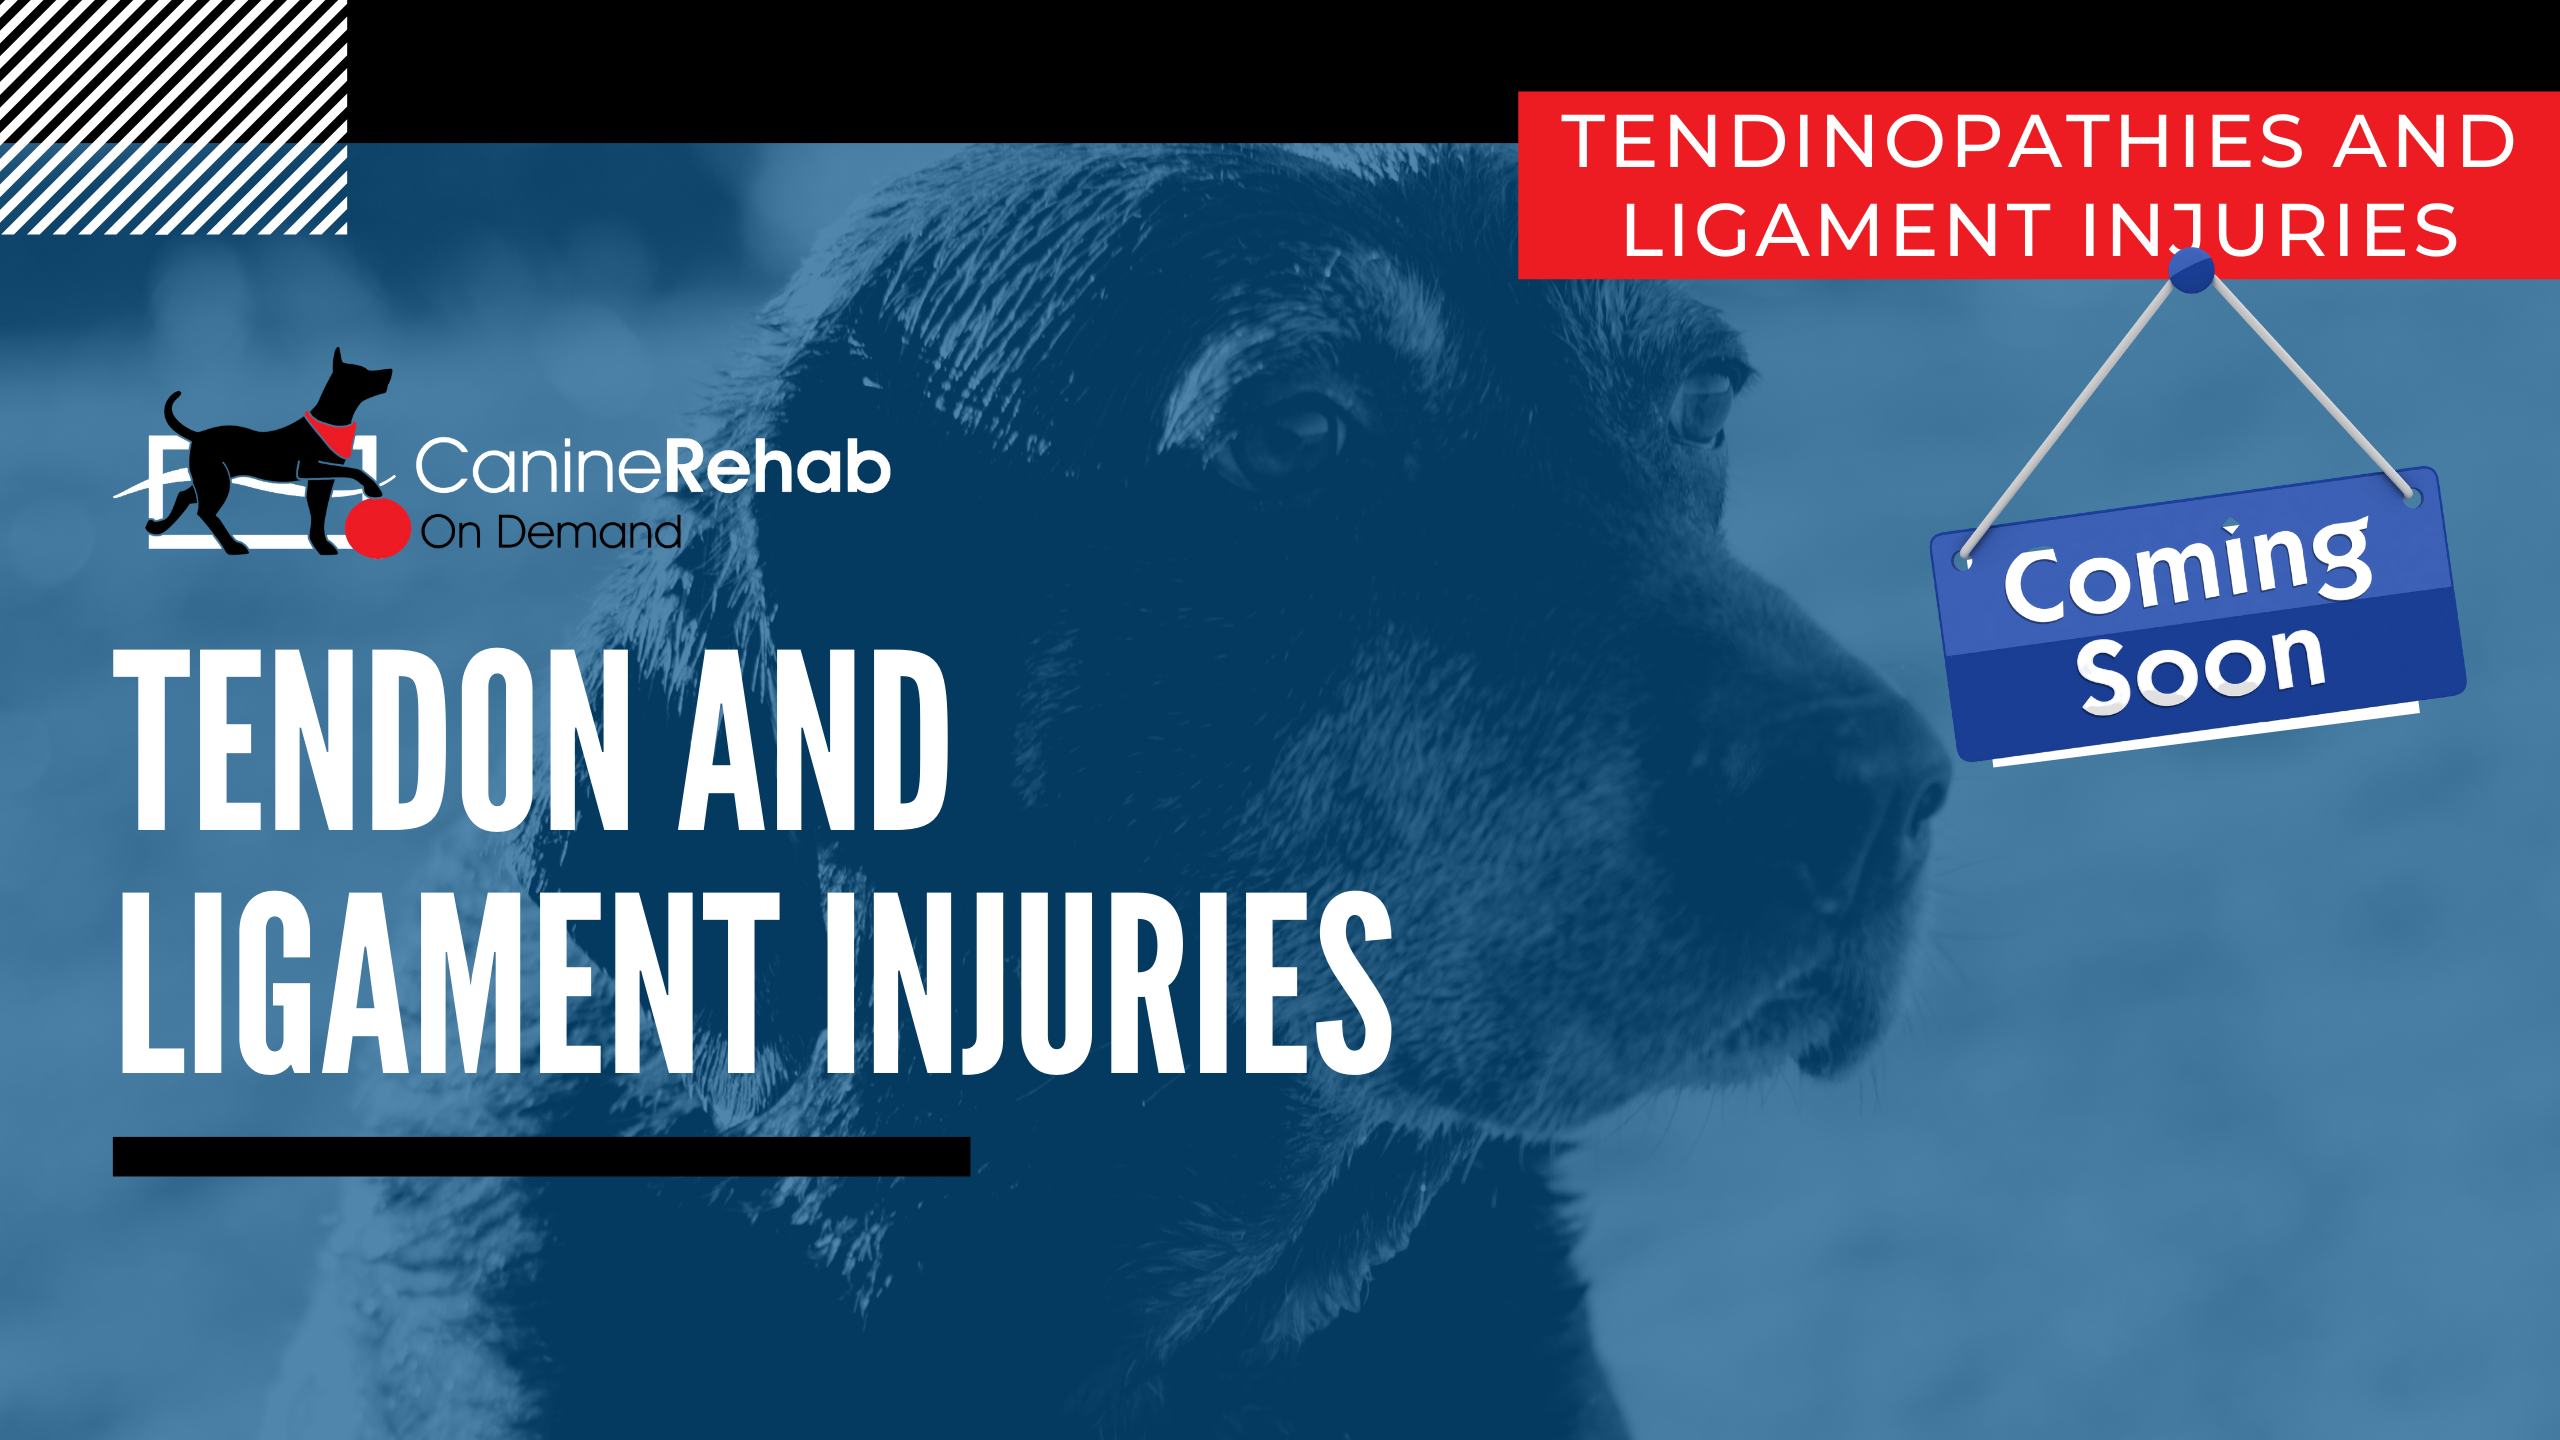 Tendon and Ligament Injuries Coming Soon